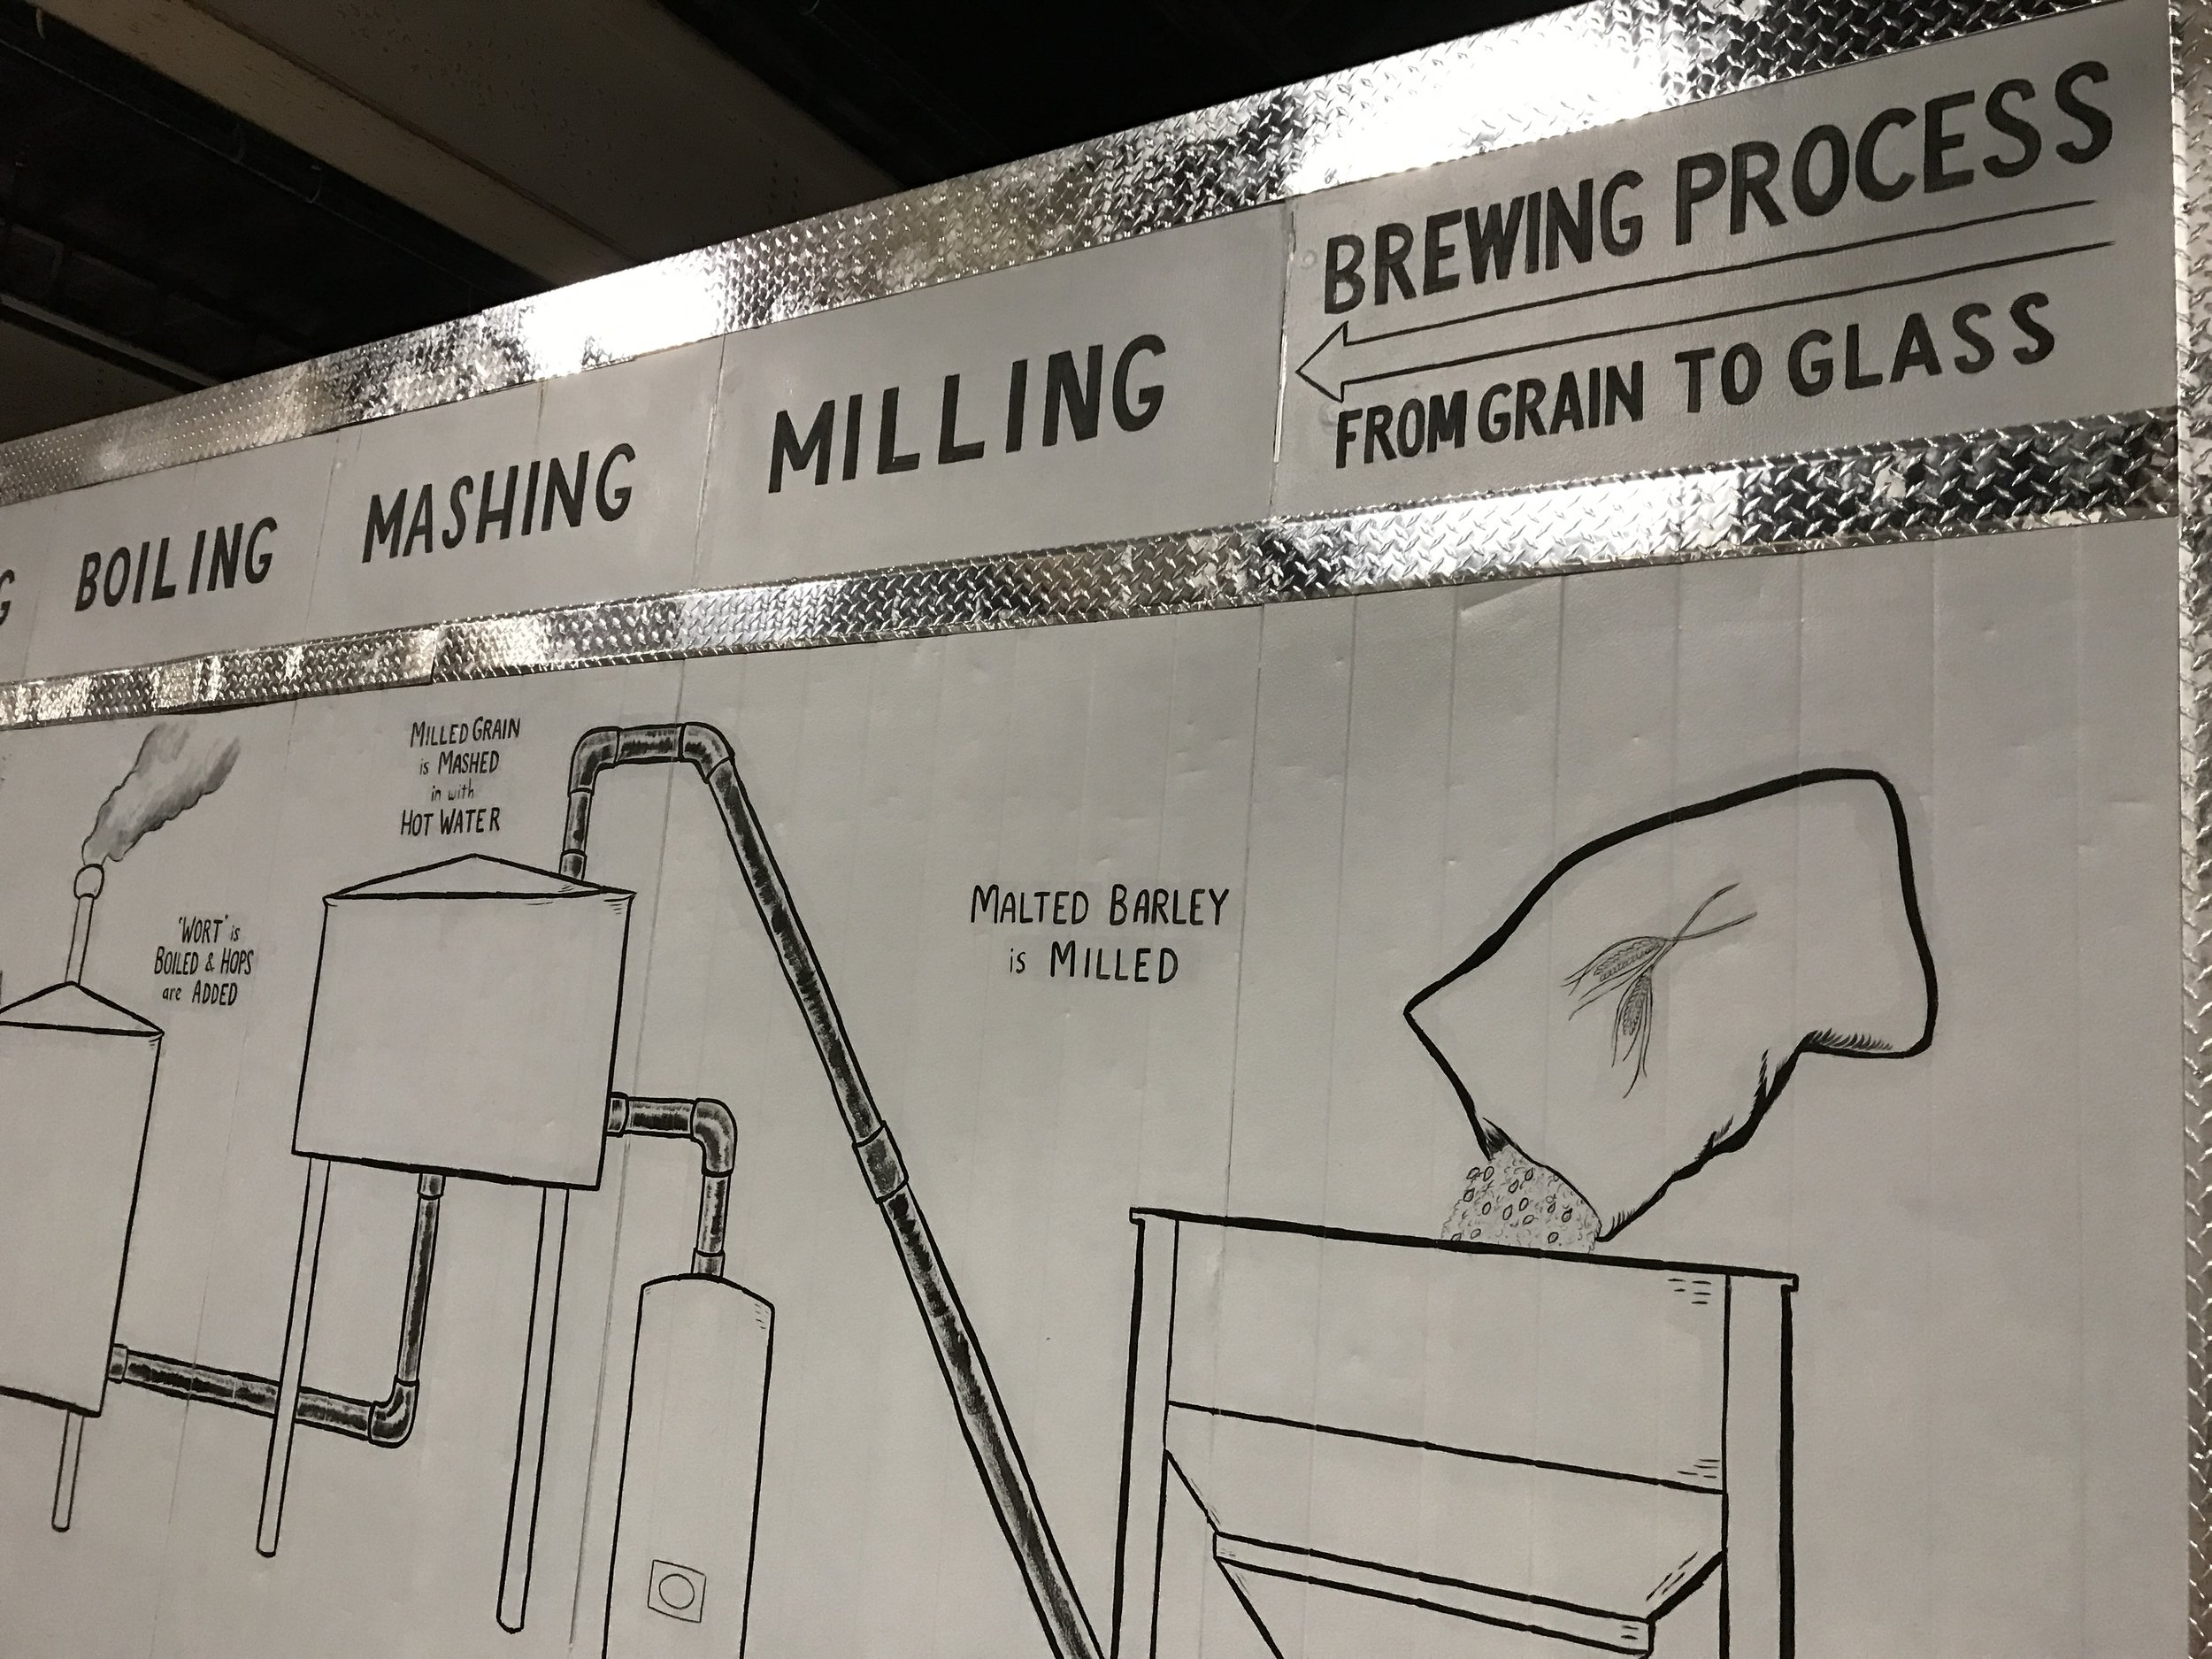 Ever wonder how beer is made? A simple wall mural en route to the tasting room explains the process.